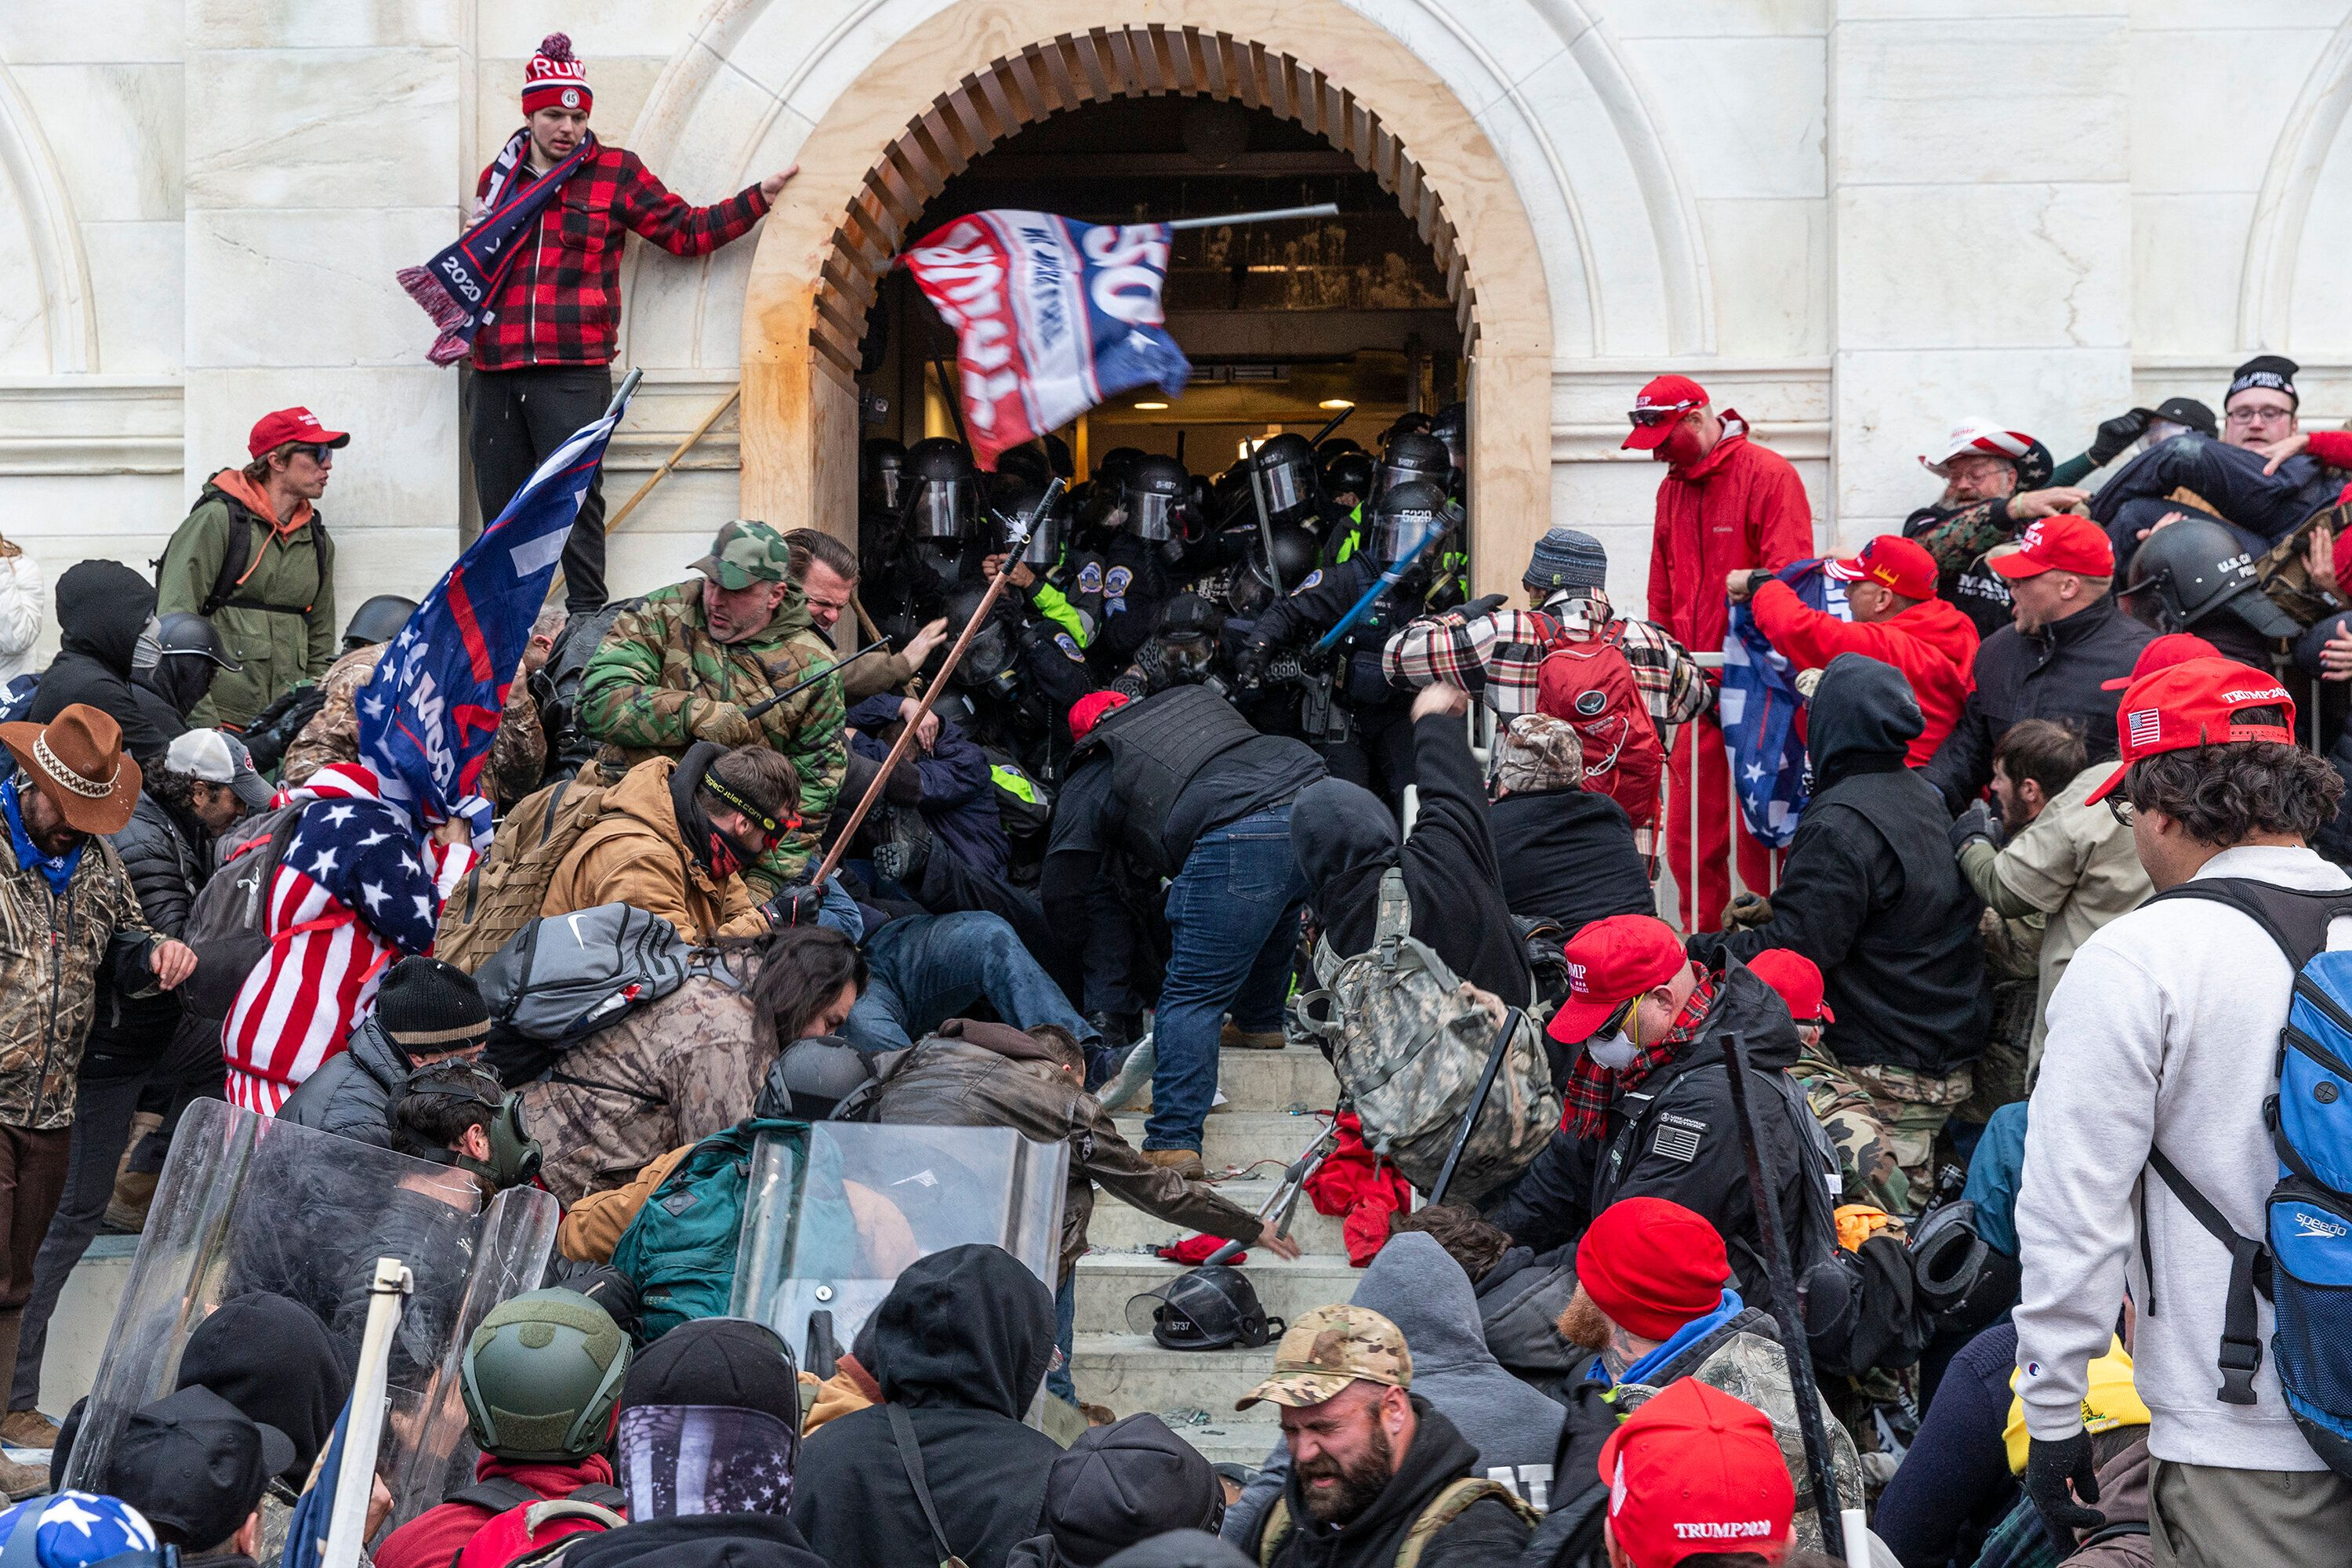 Pro-Trump extremists broke windows and breached the Capitol building on Jan. 6 in an attempt to overthrow the results of the